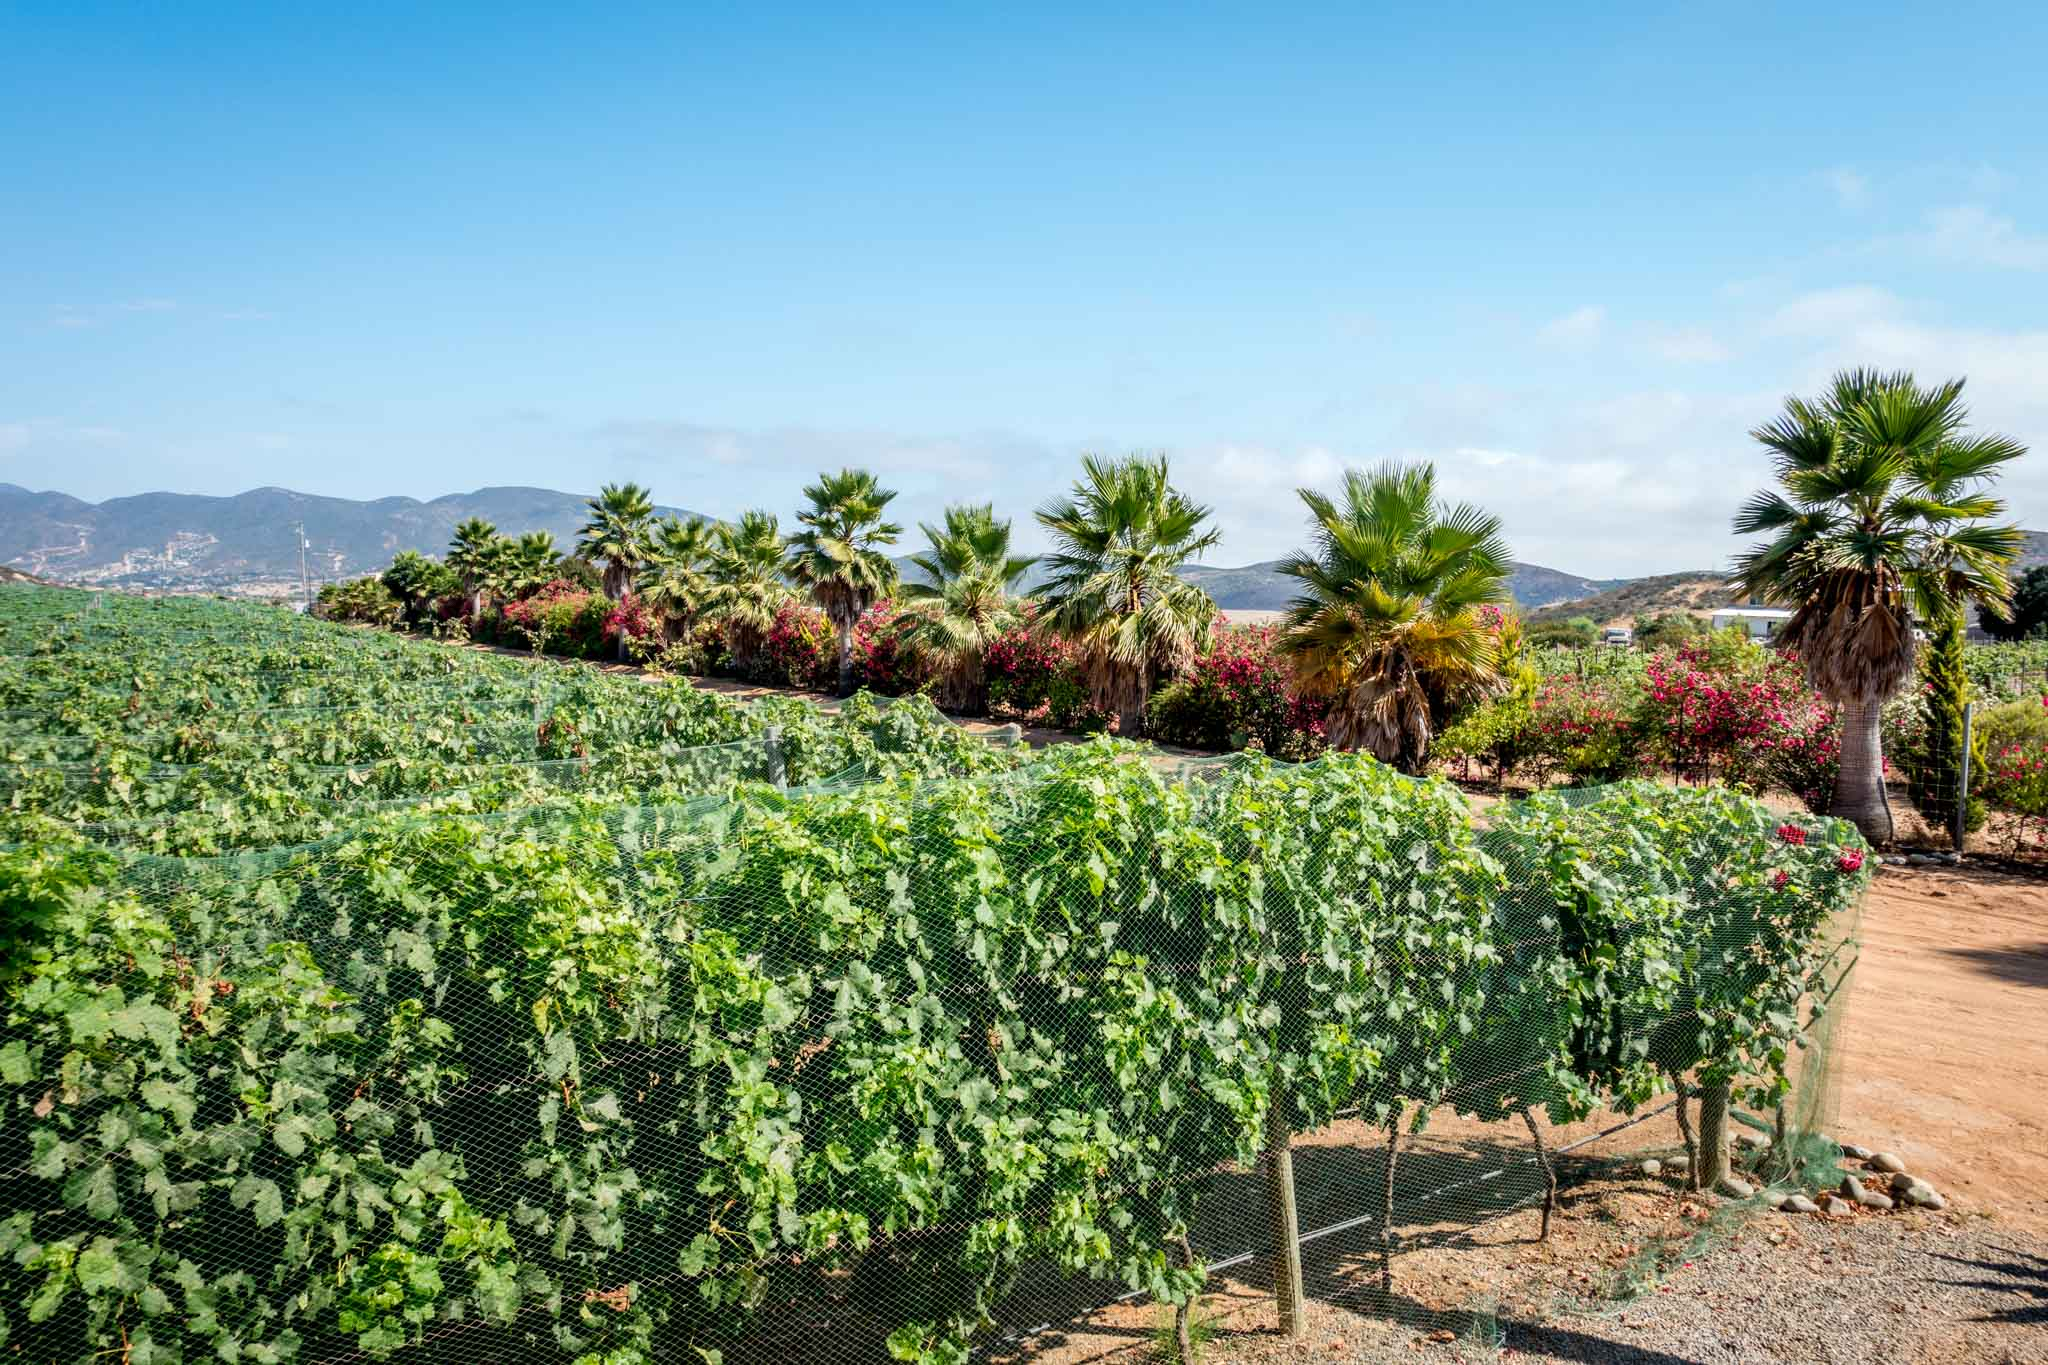 Rows of grape vines with palm trees in Baja Mexico